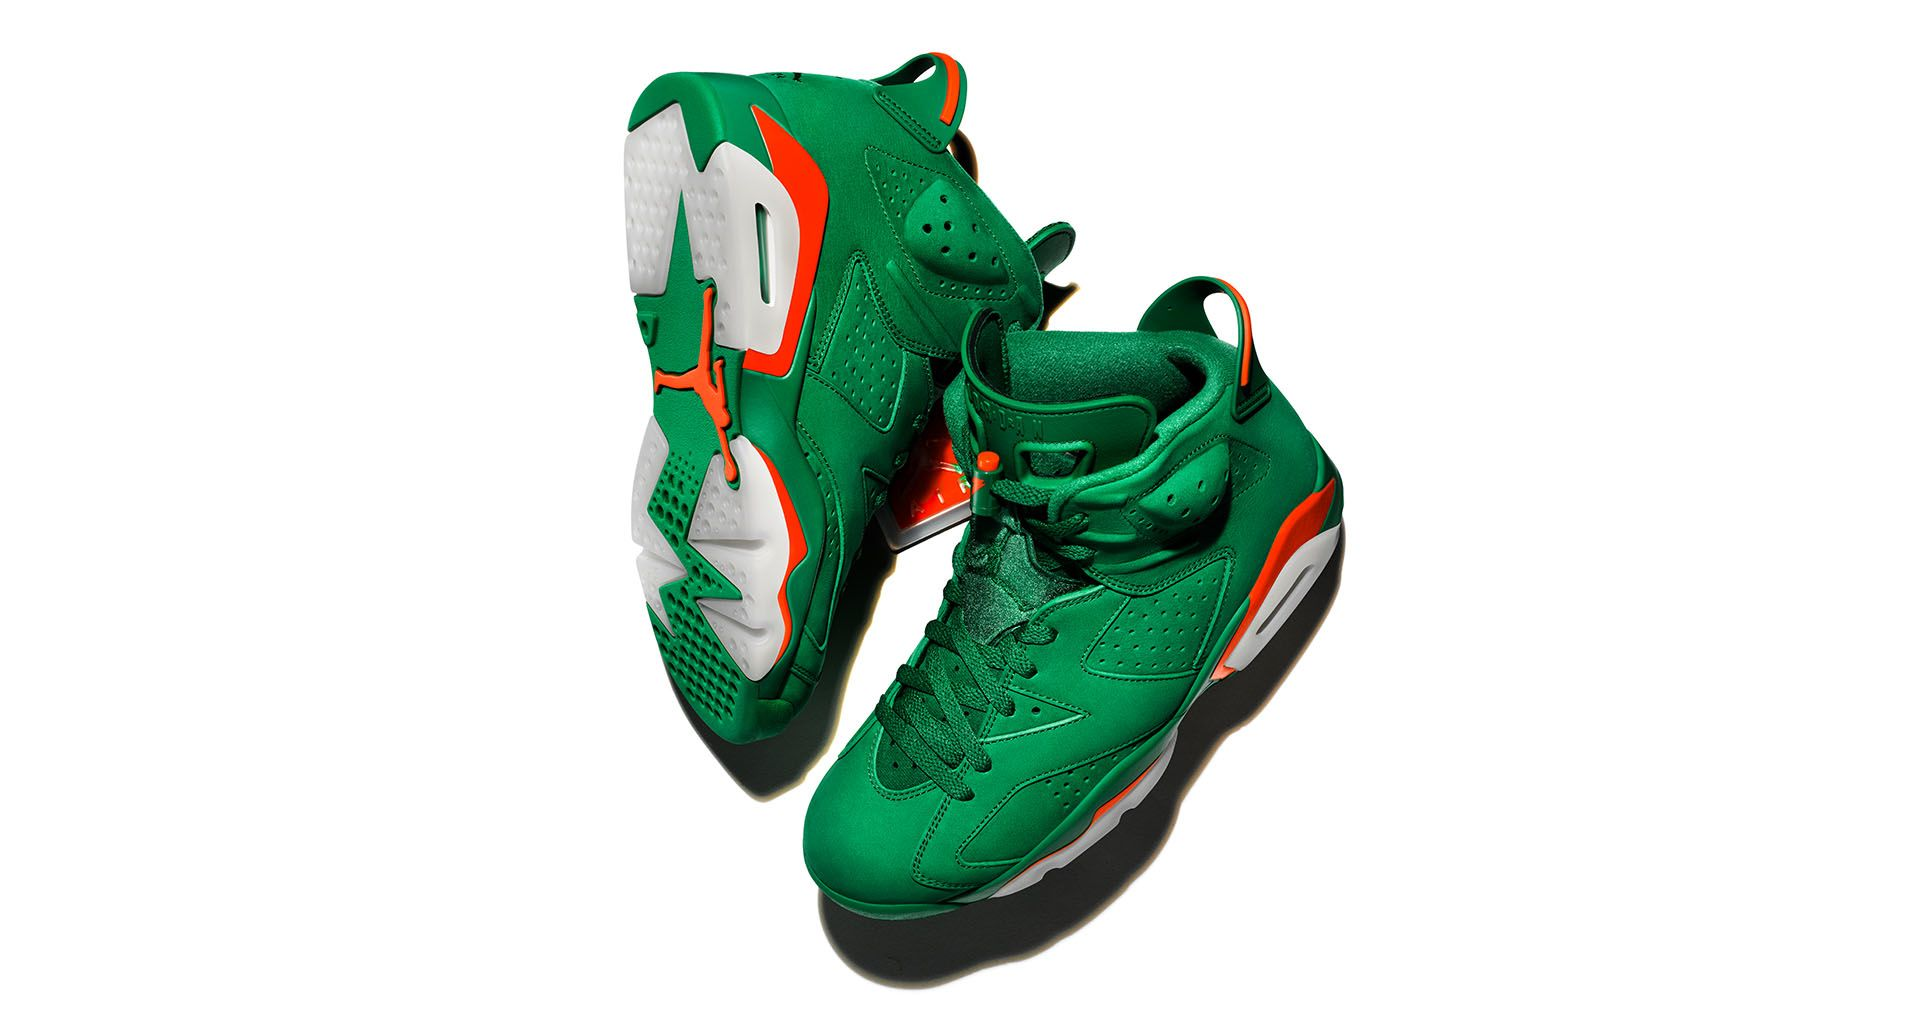 separation shoes 0aa80 2bfbb Air Jordan 6 Gatorade  Pine Green  Release Date. Nike⁠+ SNKRS